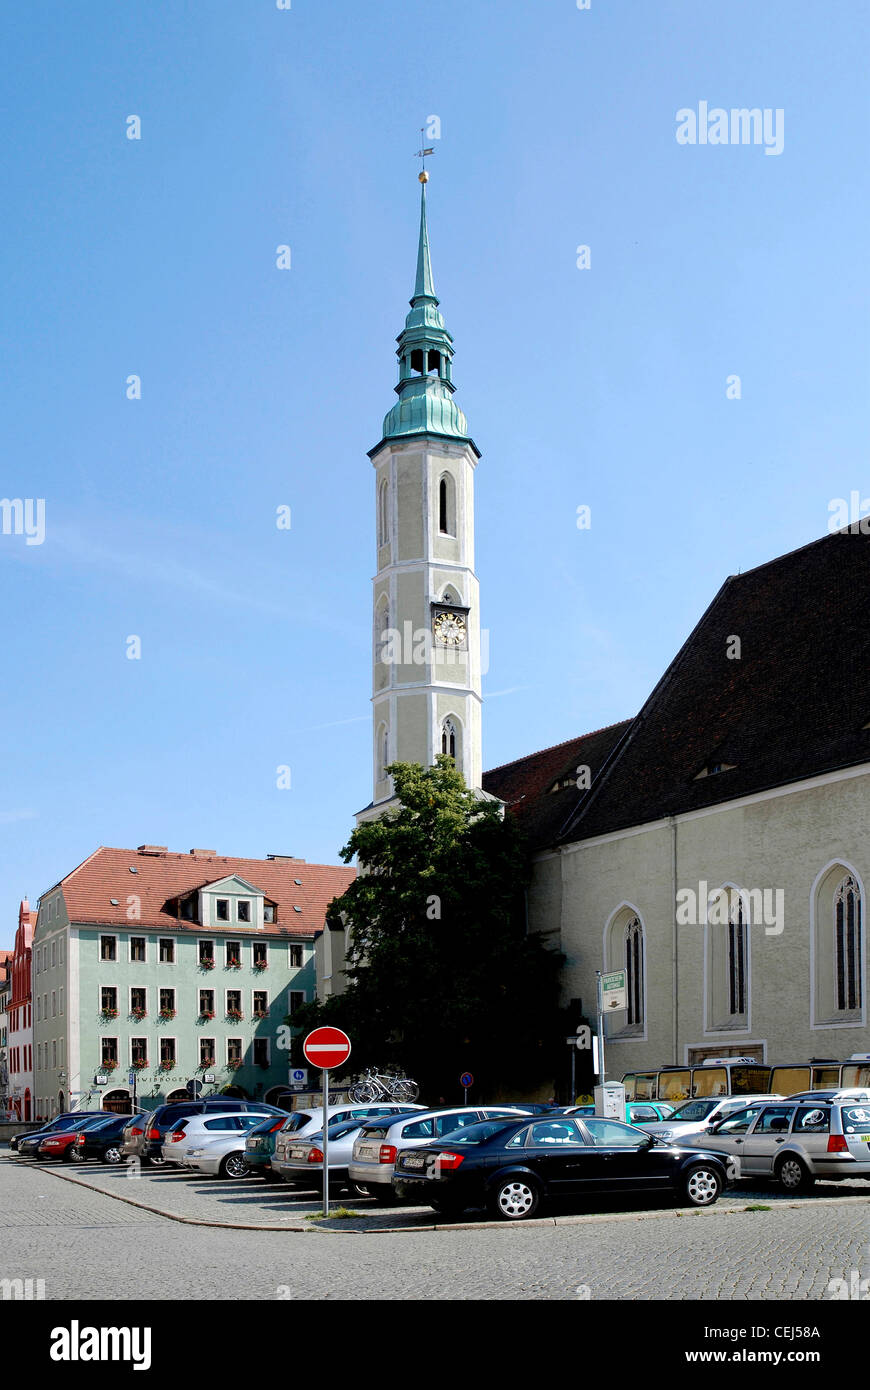 Square Obermarkt and the towers of church Saint Trinity of Goerlitz. - Stock Image